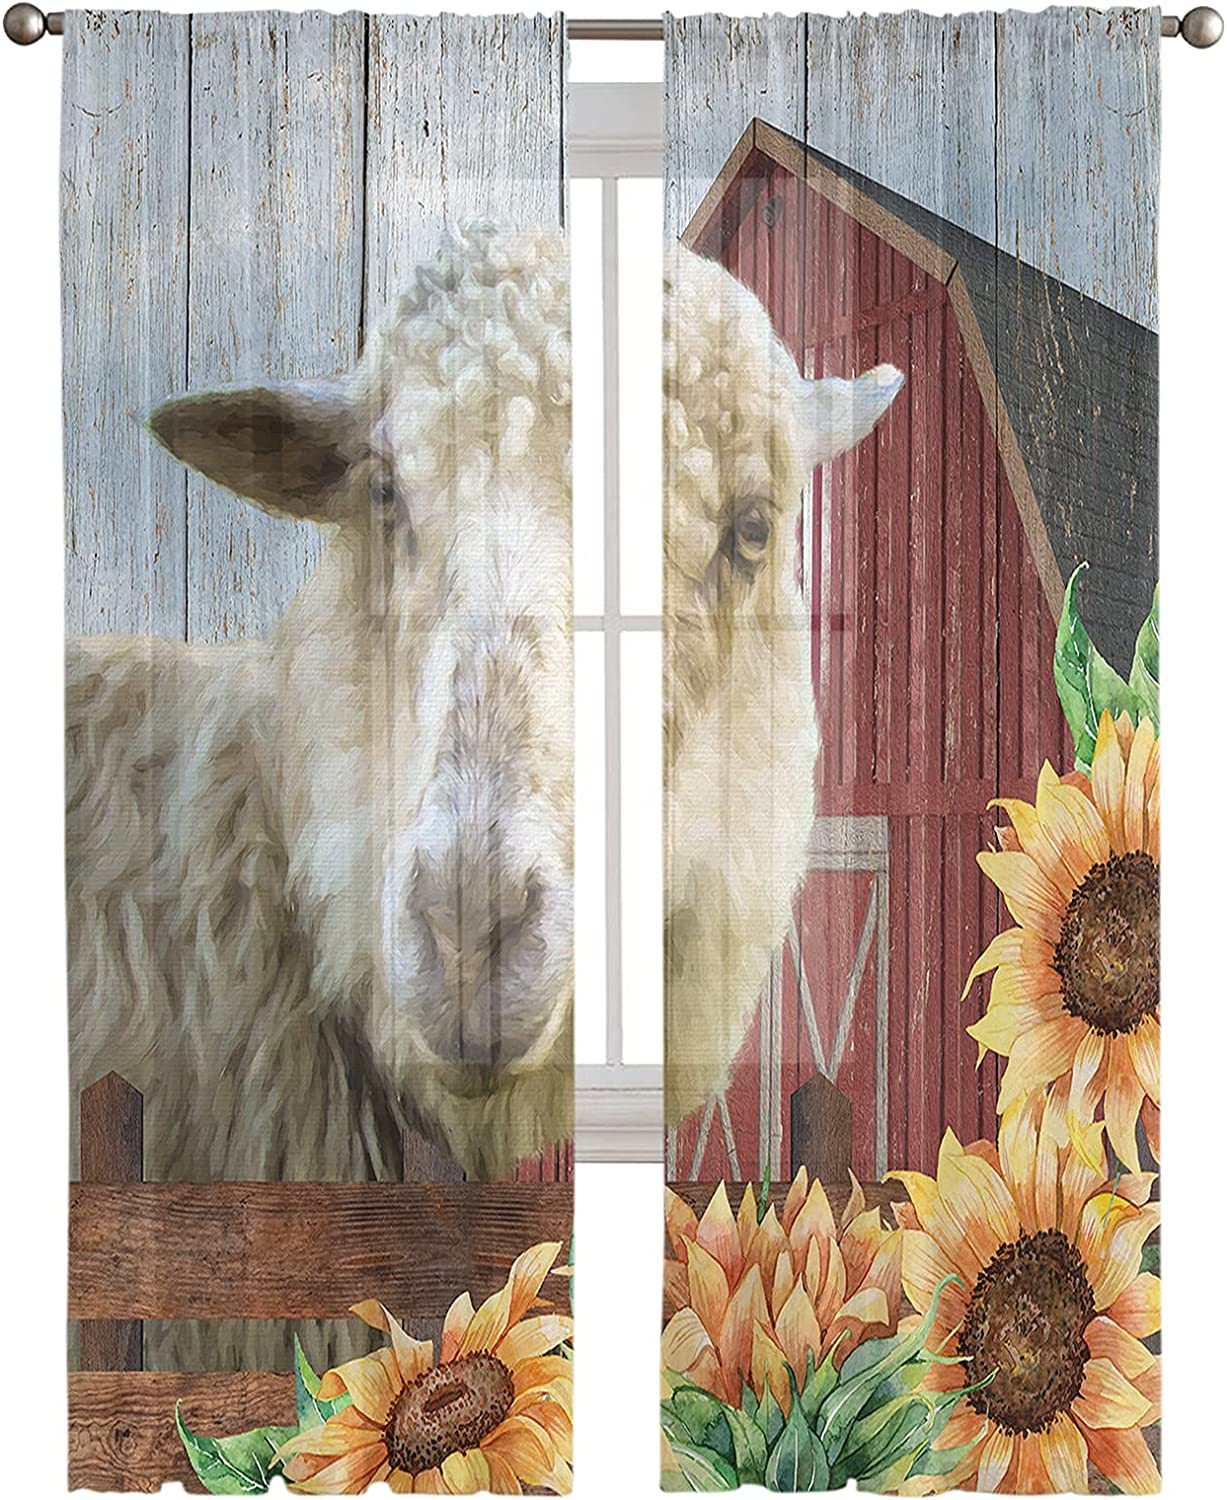 overseas Special price CHARMHOME Modern Sheer Curtains Privacy Long Barn Inch Idy 52x84